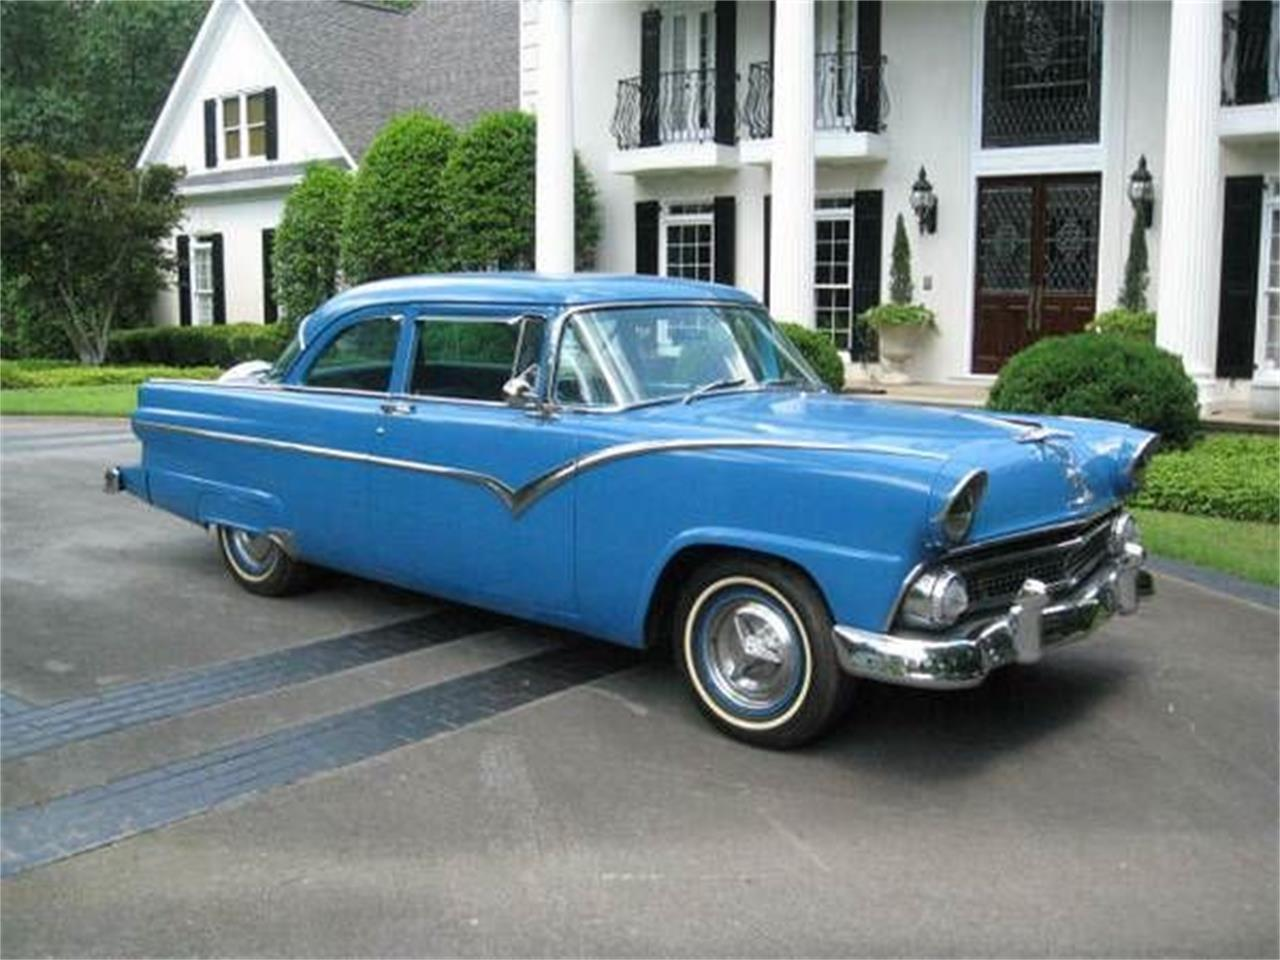 Large picture of 55 ford fairlane offered by classic car deals ny9w